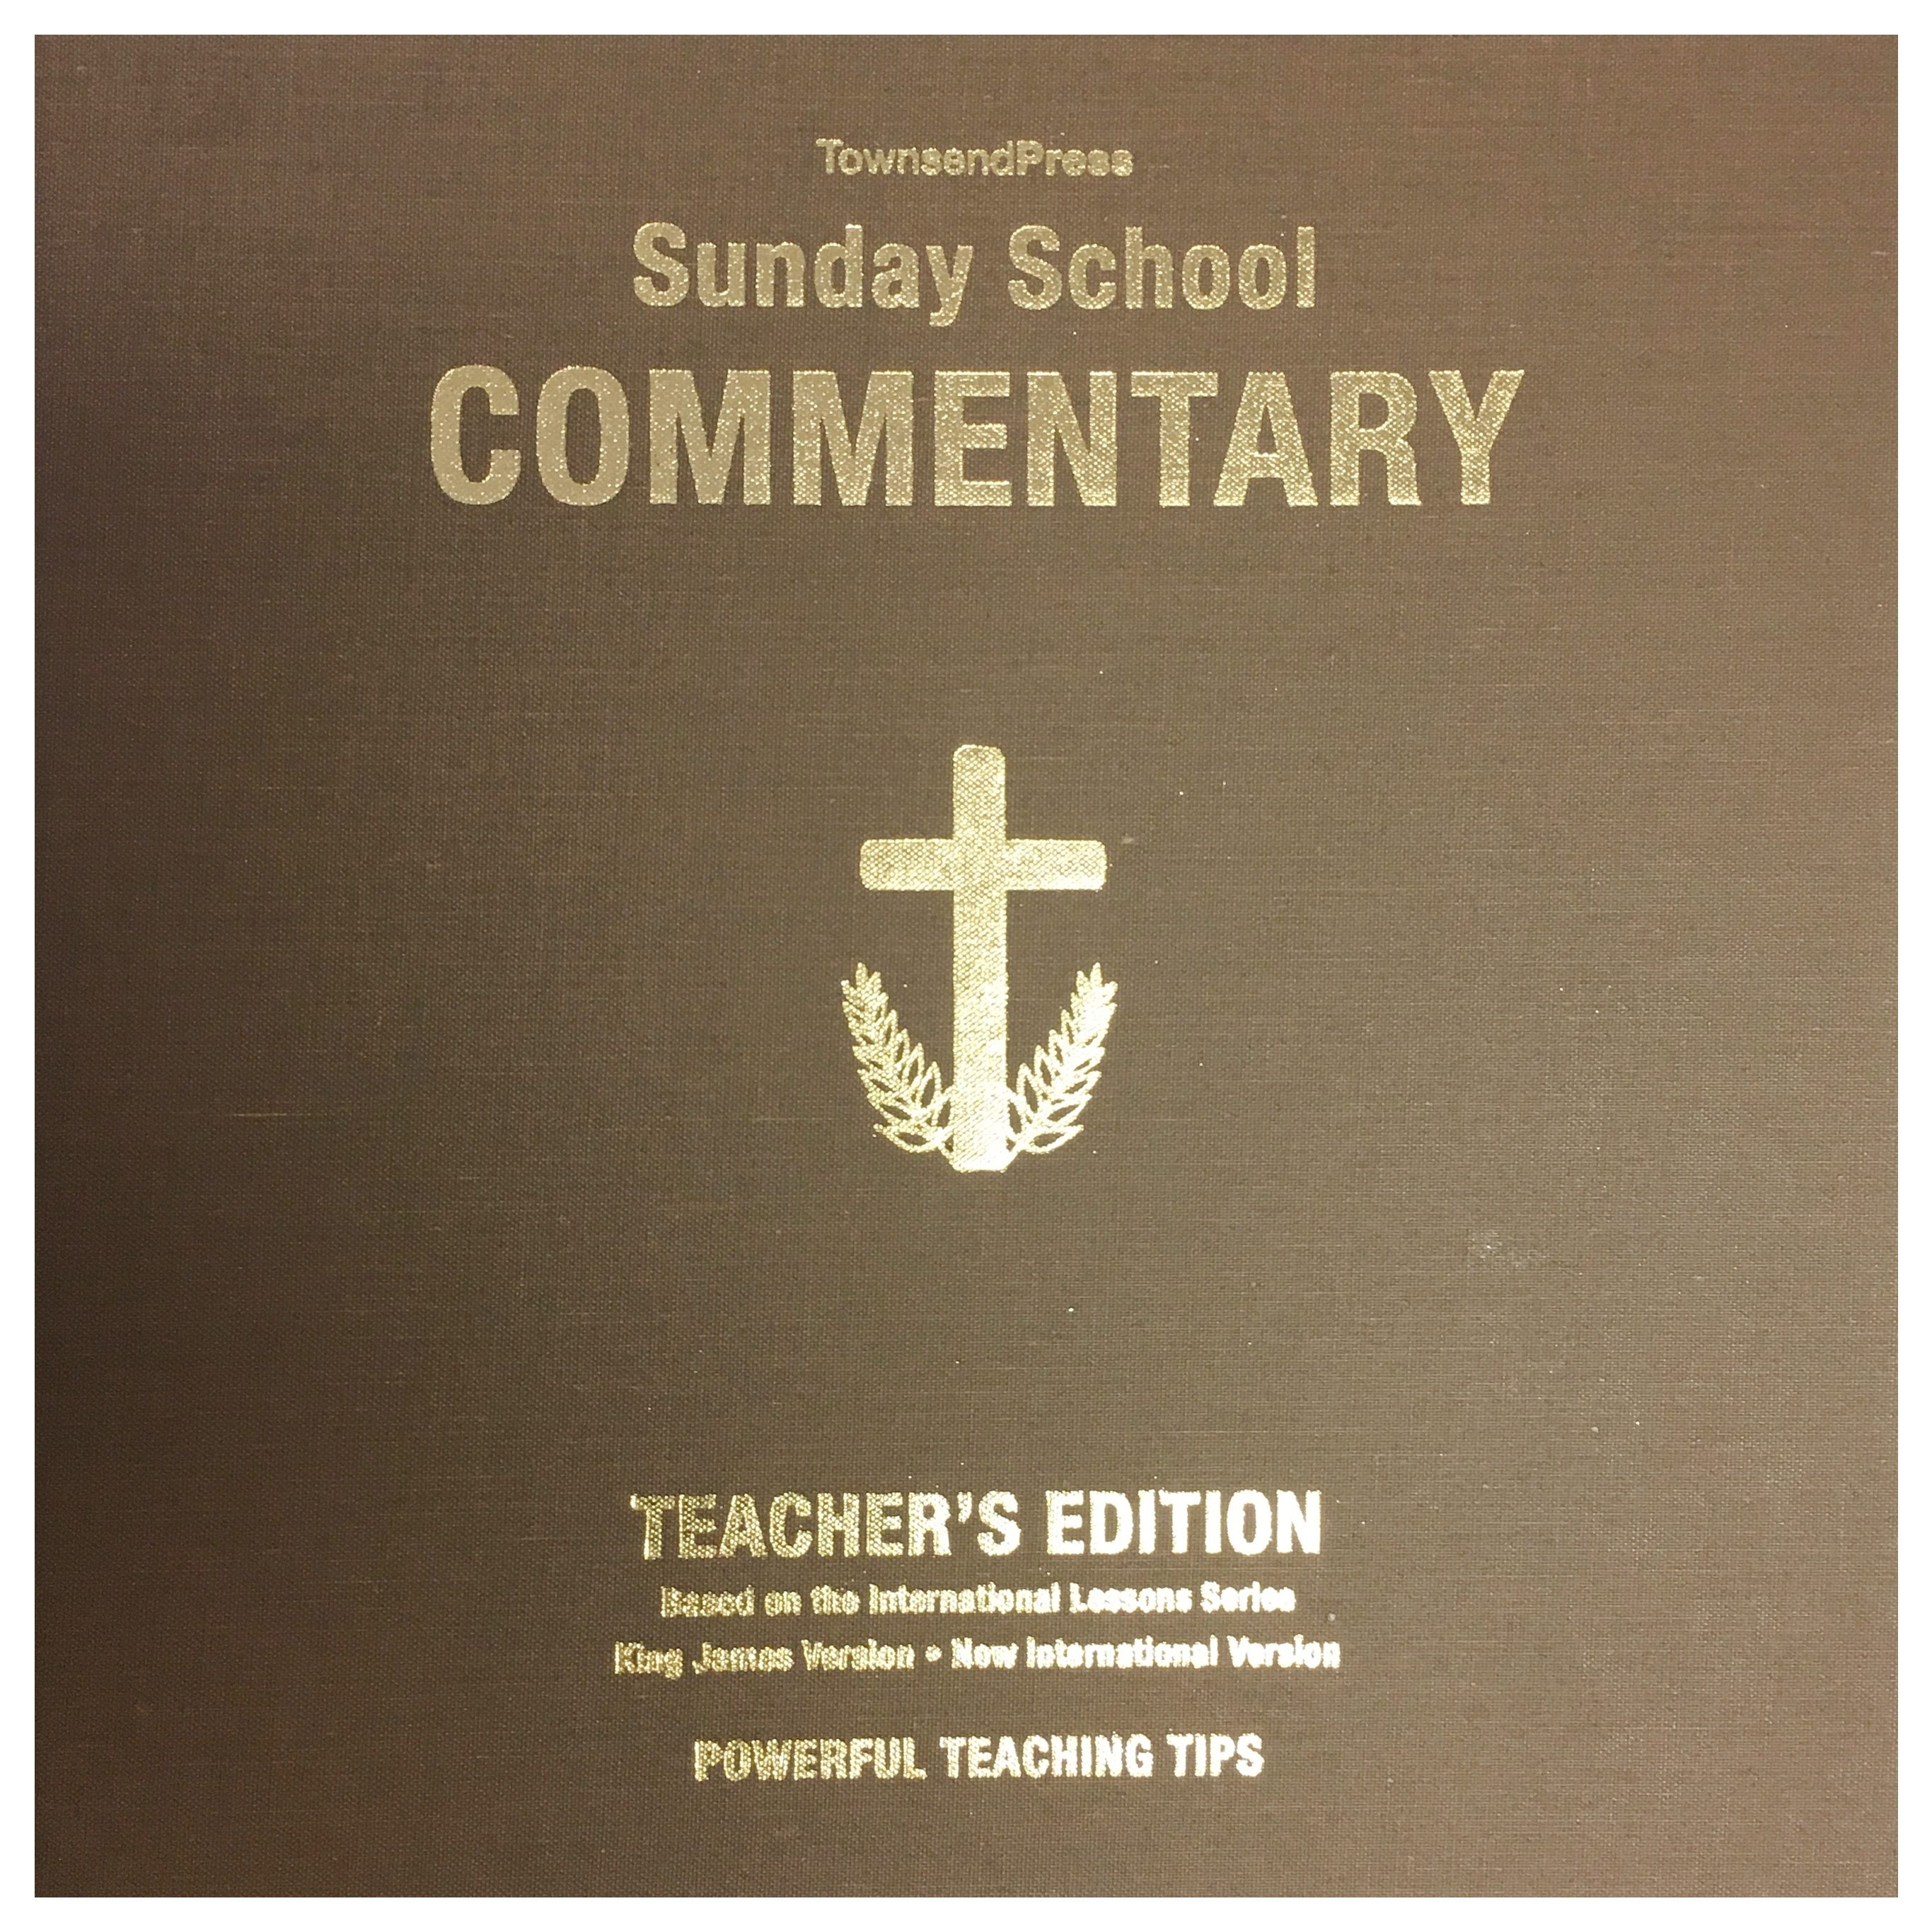 2016-2017 Townsend Press Sunday School Commentary Teacher's Edition